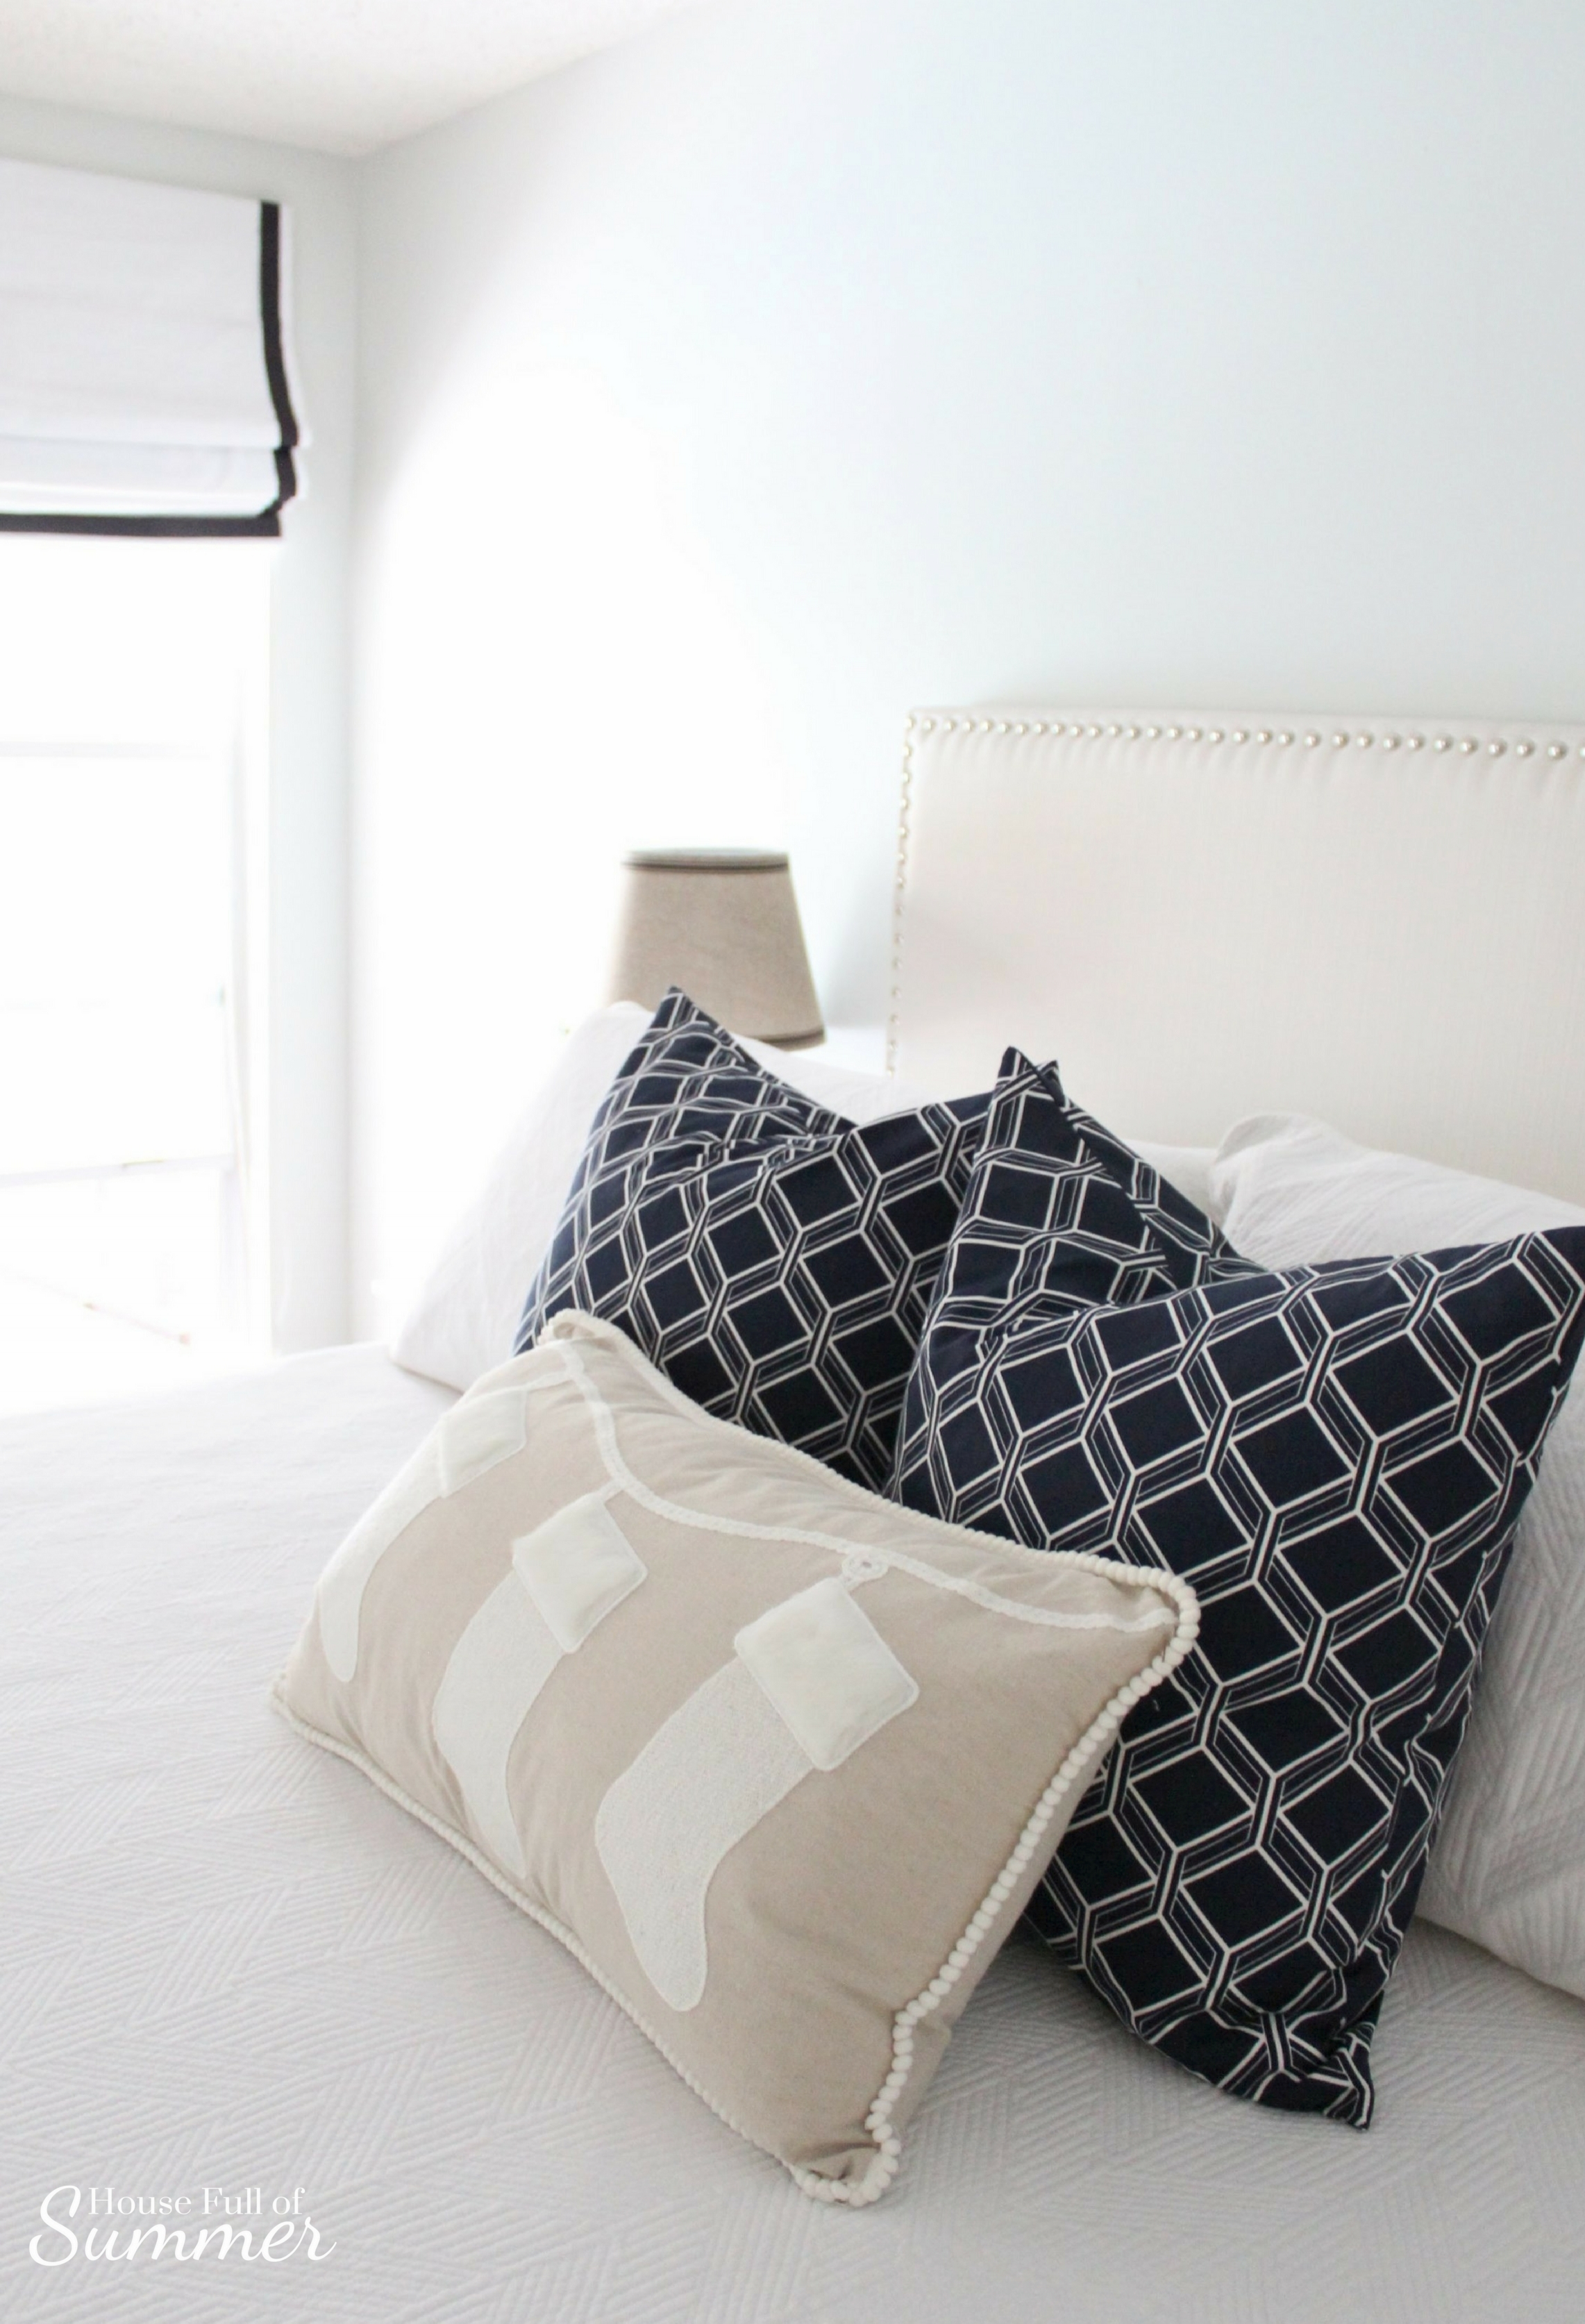 Classy Christmas Home Tour {Part Two} | House Full of Summer blog - Christmas bedding, neutral bedroom decor, navy and white Christmas ideas, Navy and white Christmas bedroom, blue christmas decorations, coastal home, blue and white area rug, tall nightstands, throw pillows, pottery barn style, roman shades